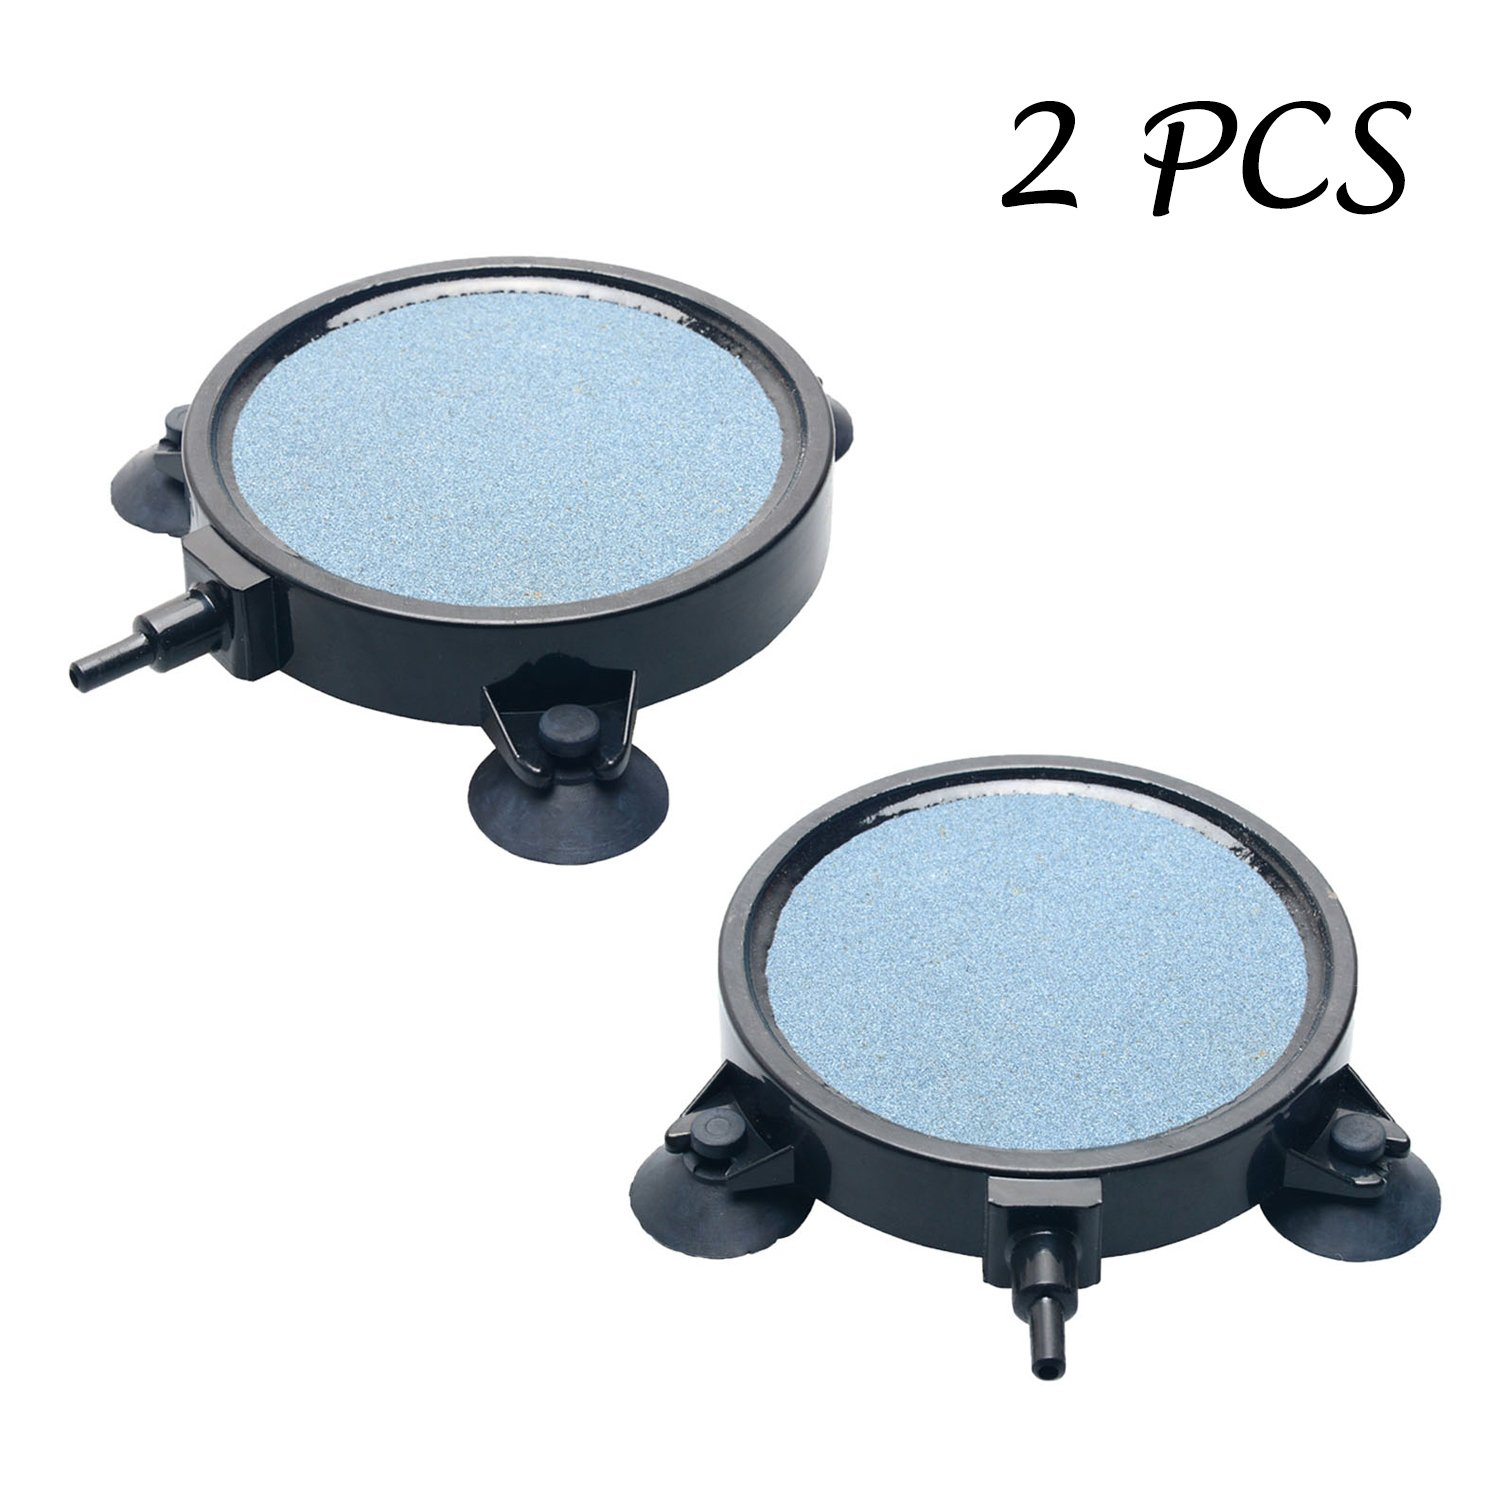 Pawfly 2 PCS 4-Inch Air Stone Disc Bubble Diffuser with Suction Cups for Hydroponics Aquarium Fish Tank Pump